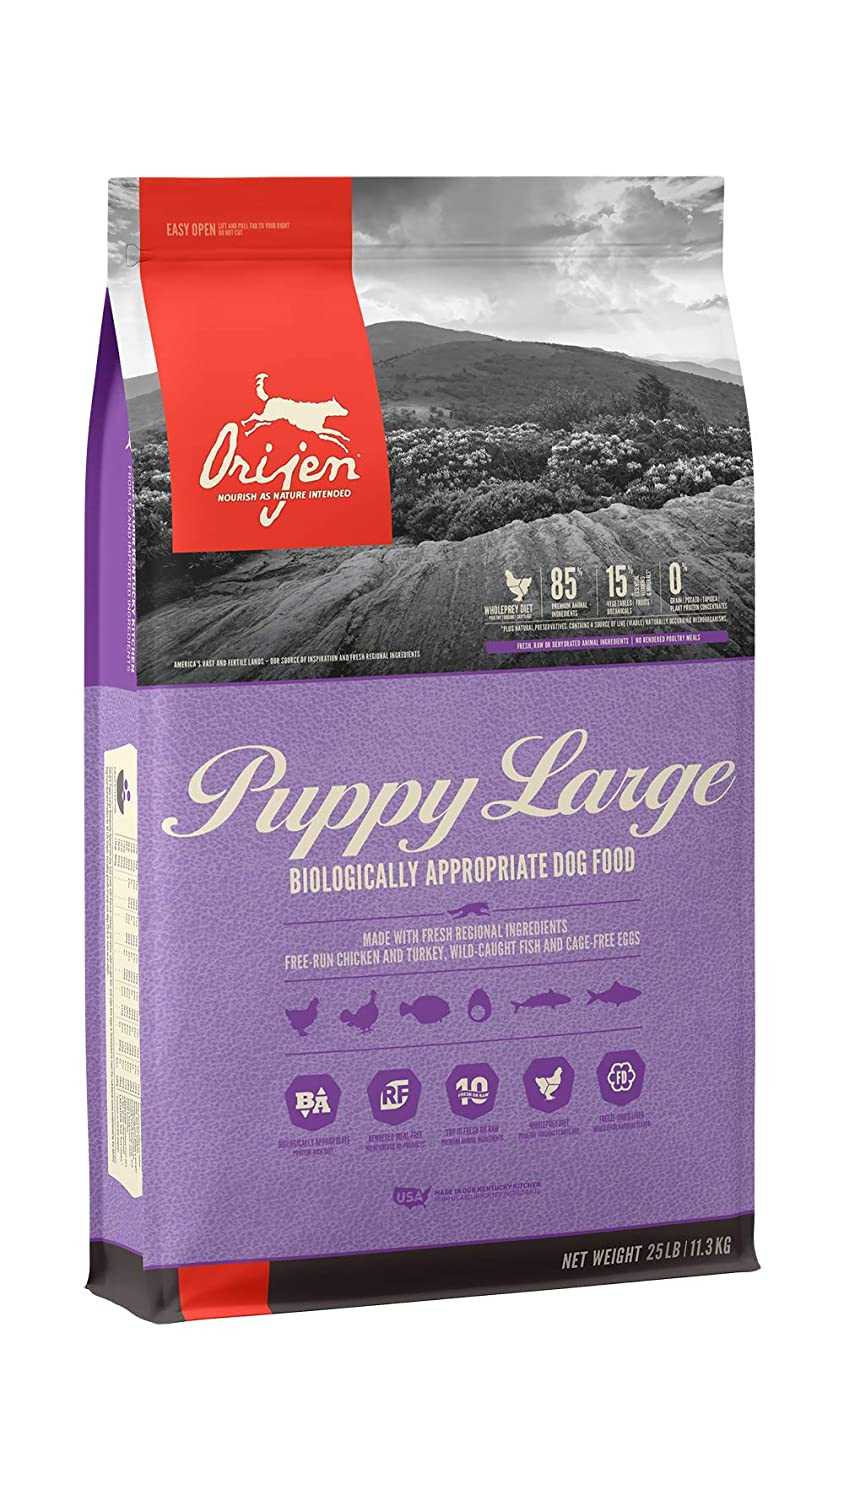 ORIJEN Puppy Large High-Protein, Grain-Free, Premium Animal Ingredient, Dry Dog Food